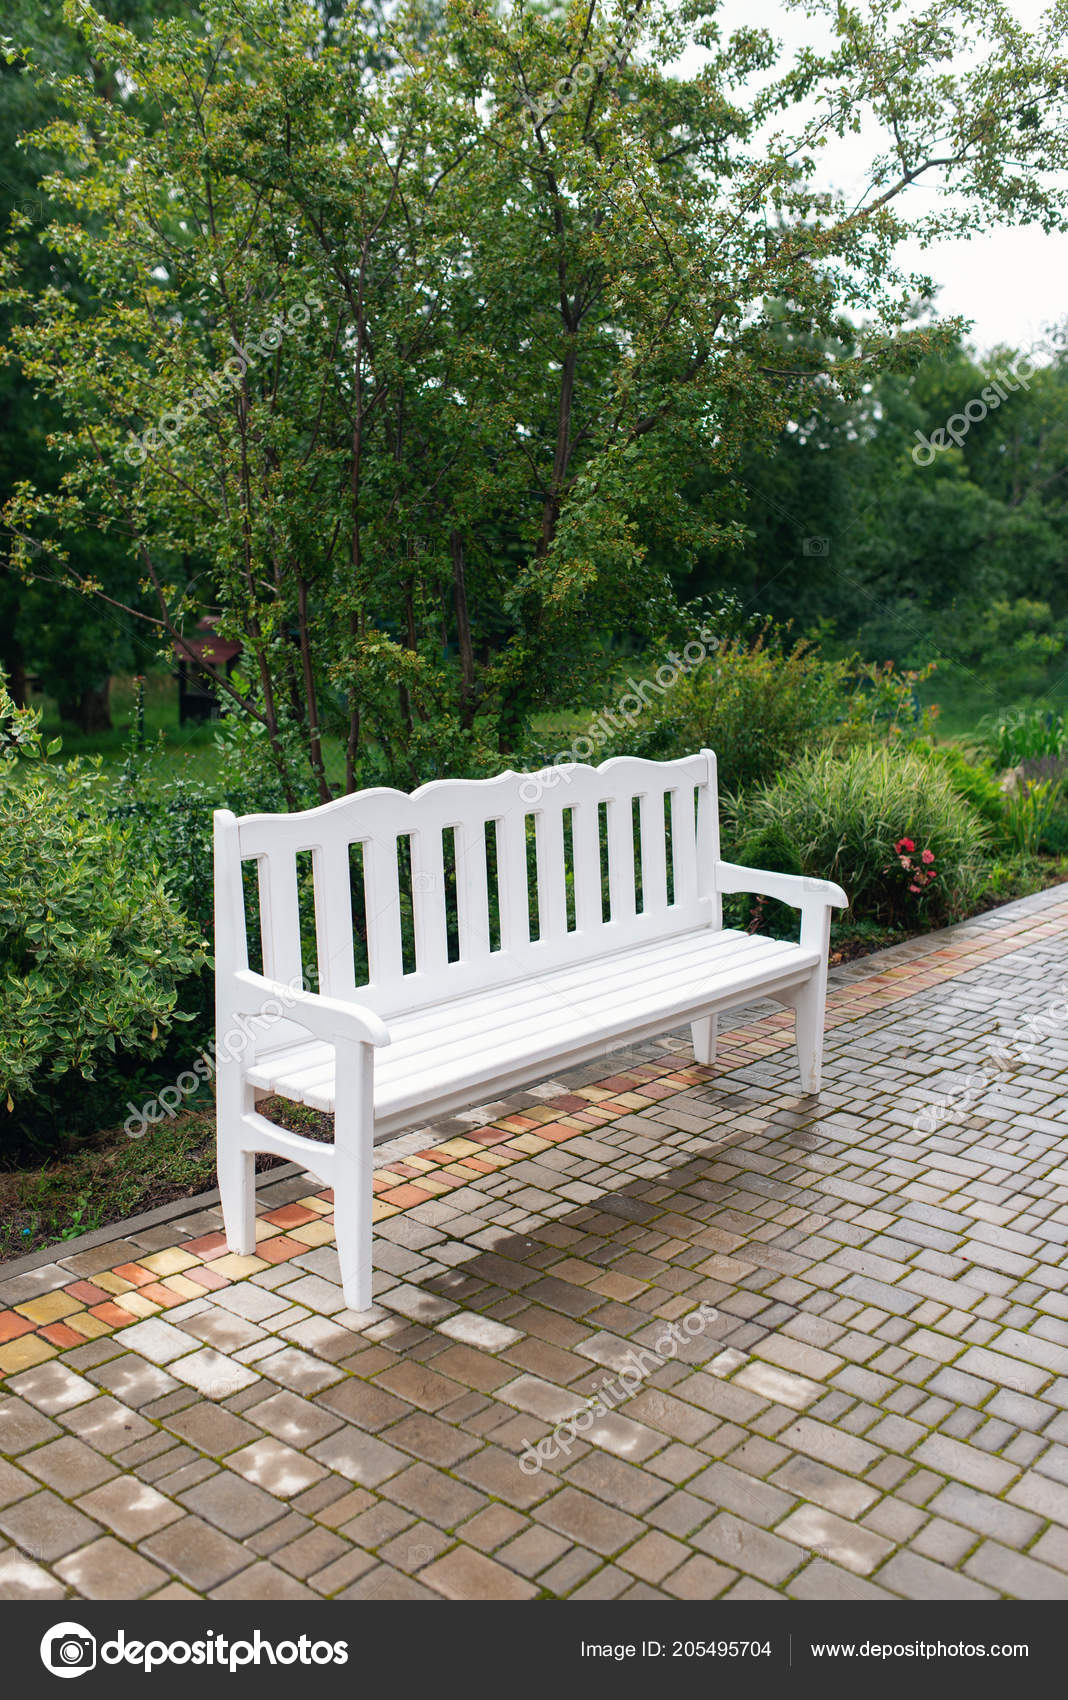 Wondrous Lounge Area Guests Wedding Decor White Bench Park Stock Andrewgaddart Wooden Chair Designs For Living Room Andrewgaddartcom